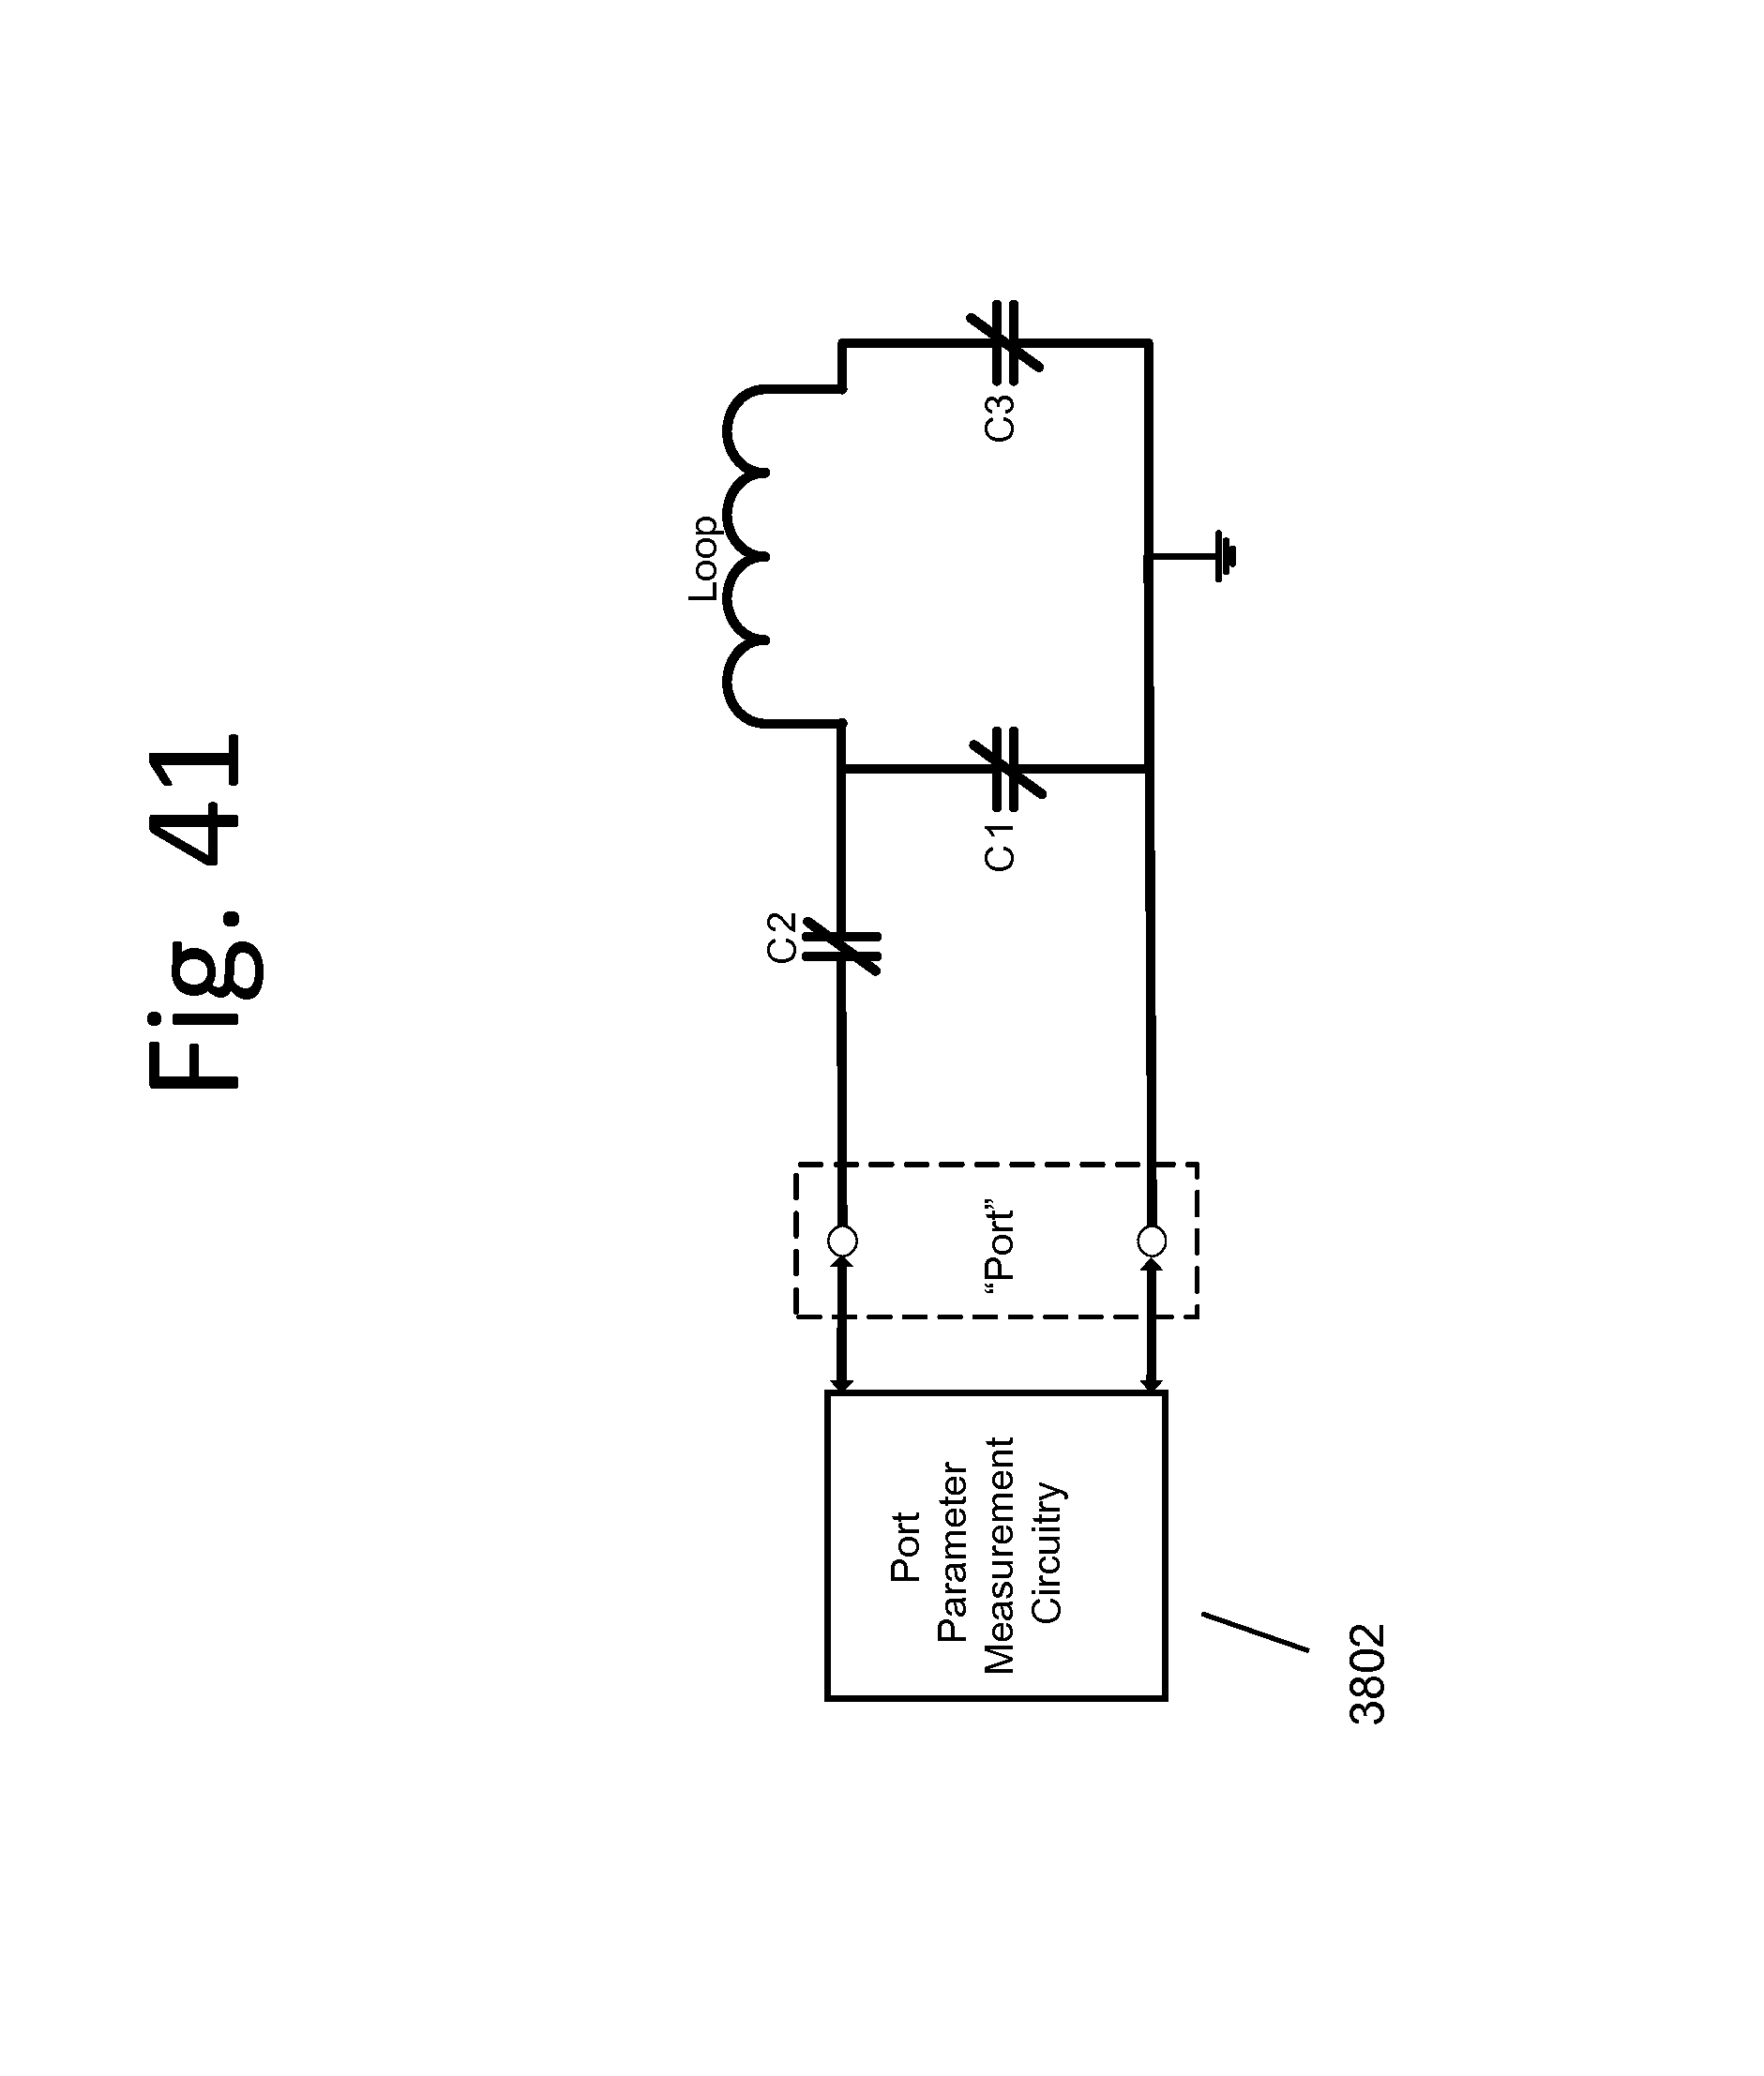 Patent Us 9318922 B2 Solid State Relay Schematic Symbol Panasonic Electric Works Images